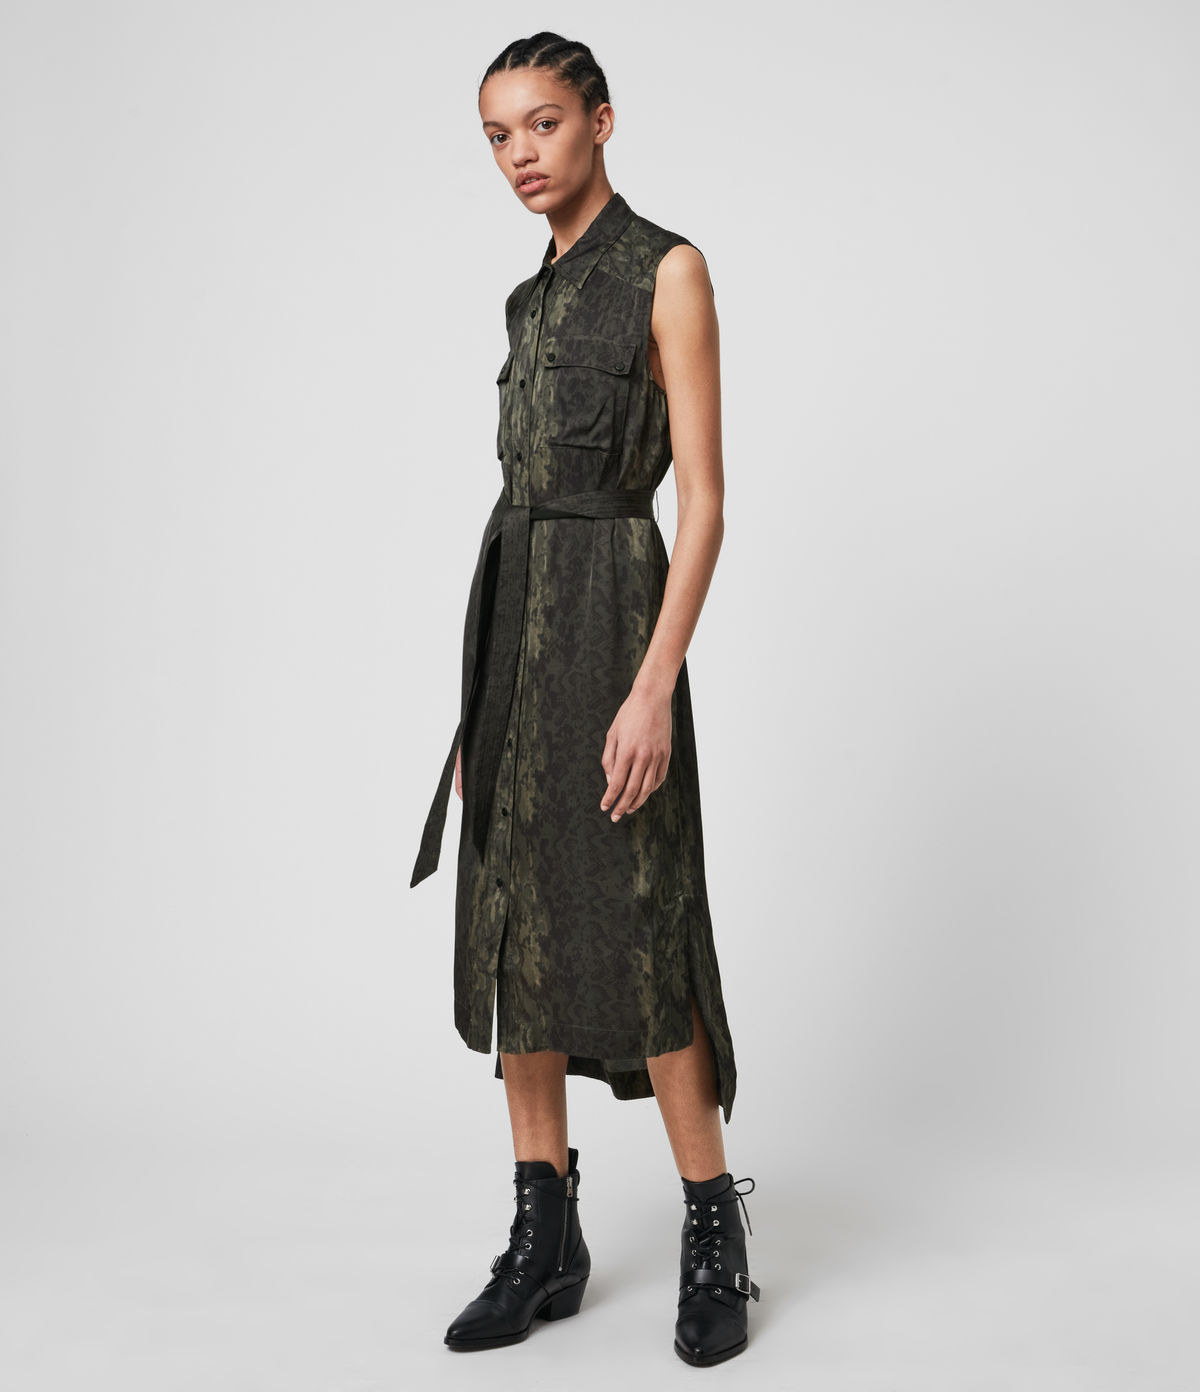 model wearing sleeveless button up shirt dress in dark green snakeprint